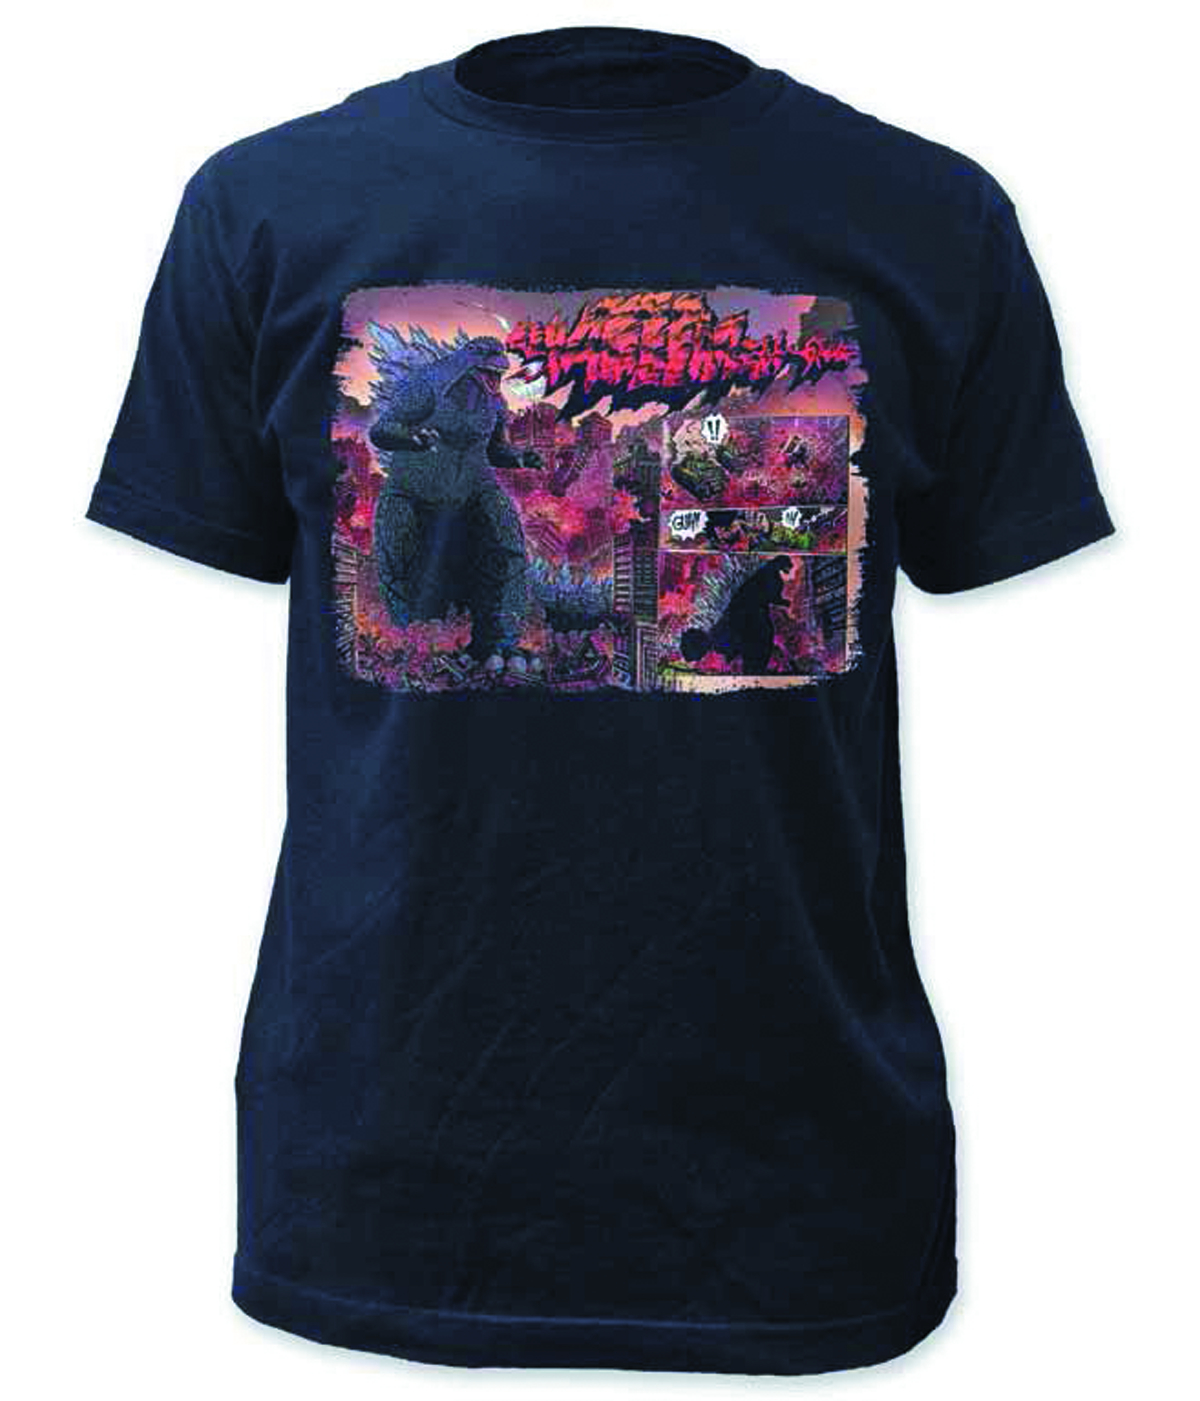 GODZILLA SCREAM CITY PX NAVY T/S SM